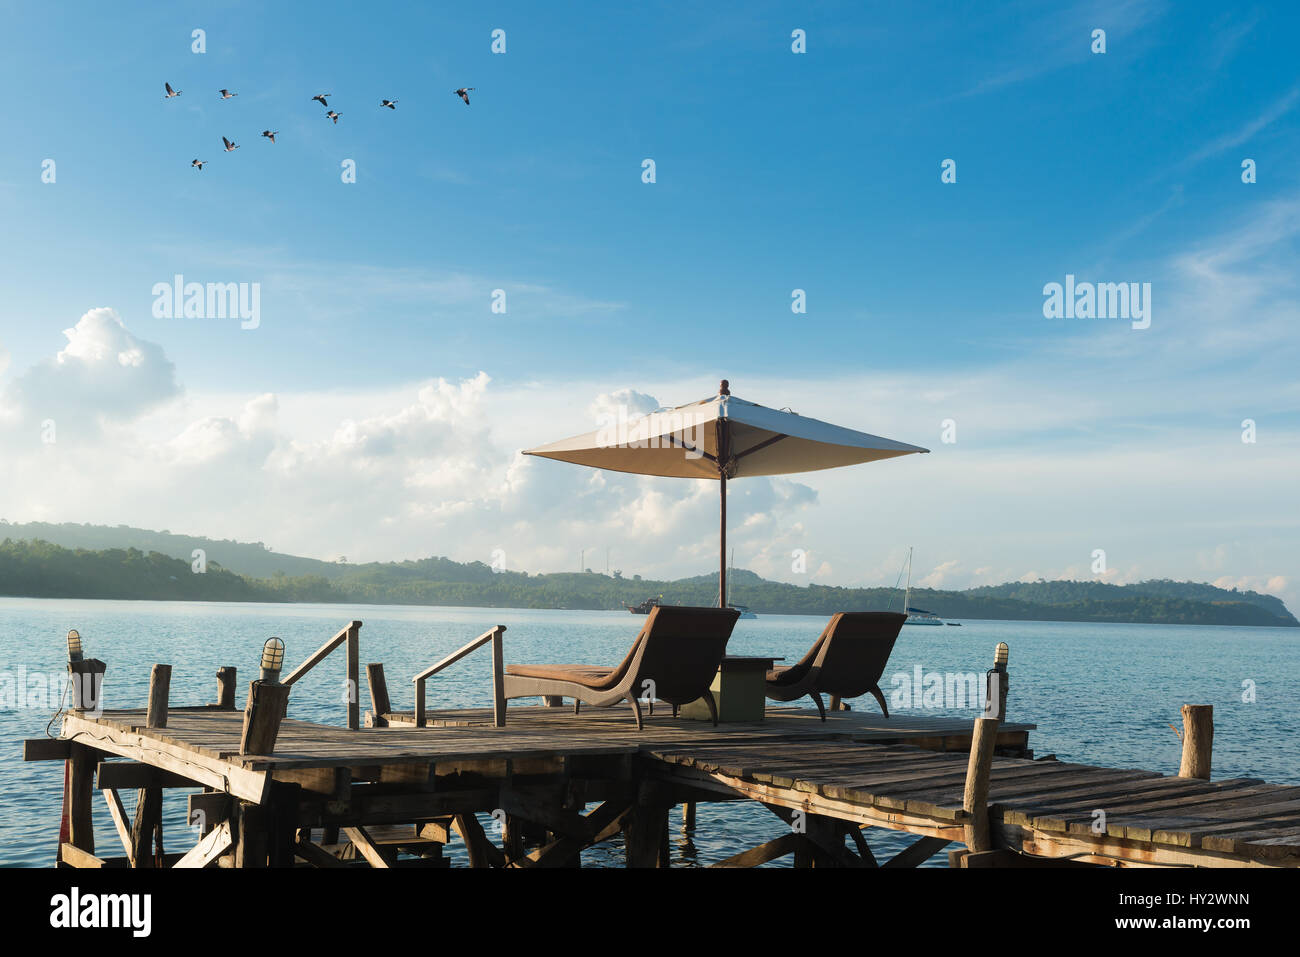 Beach Chairs and Umbrella on island in Phuket, Thailand. Summer, Travel, Vacation and Holiday concept - Stock Image